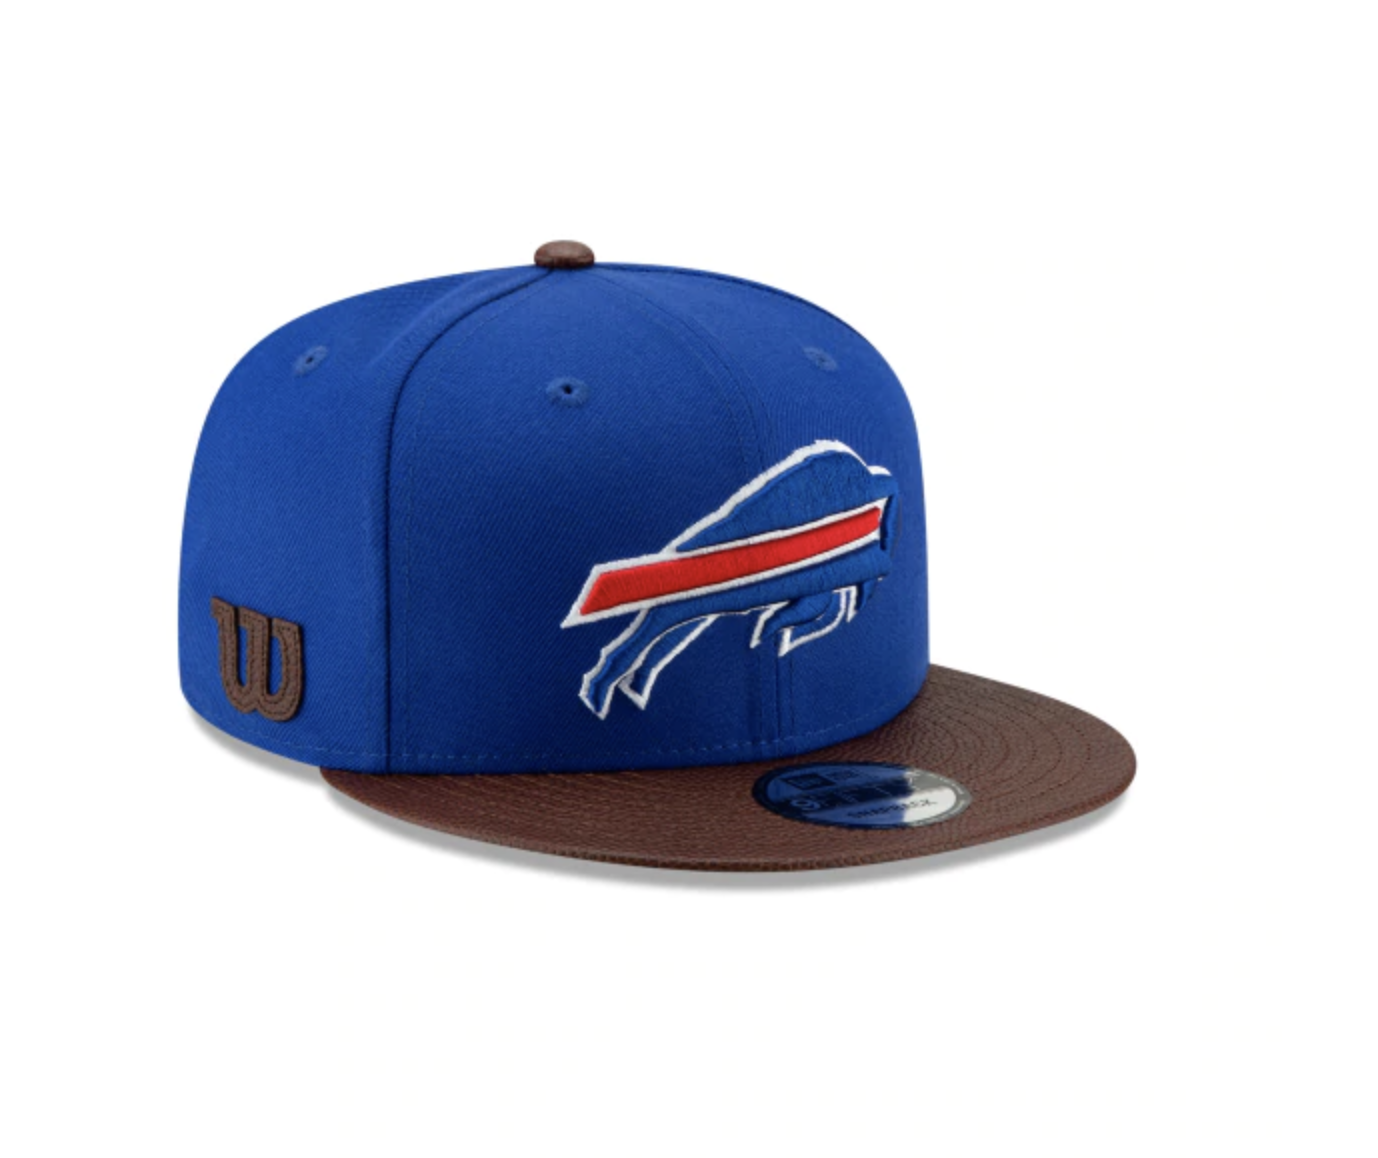 778a1e0acac New Era Arizona Cardinals Salute To Service Low Profile 59FIFTY Fitted Cap  2018 Men - Sports Fan Shop By Lids - Macy s